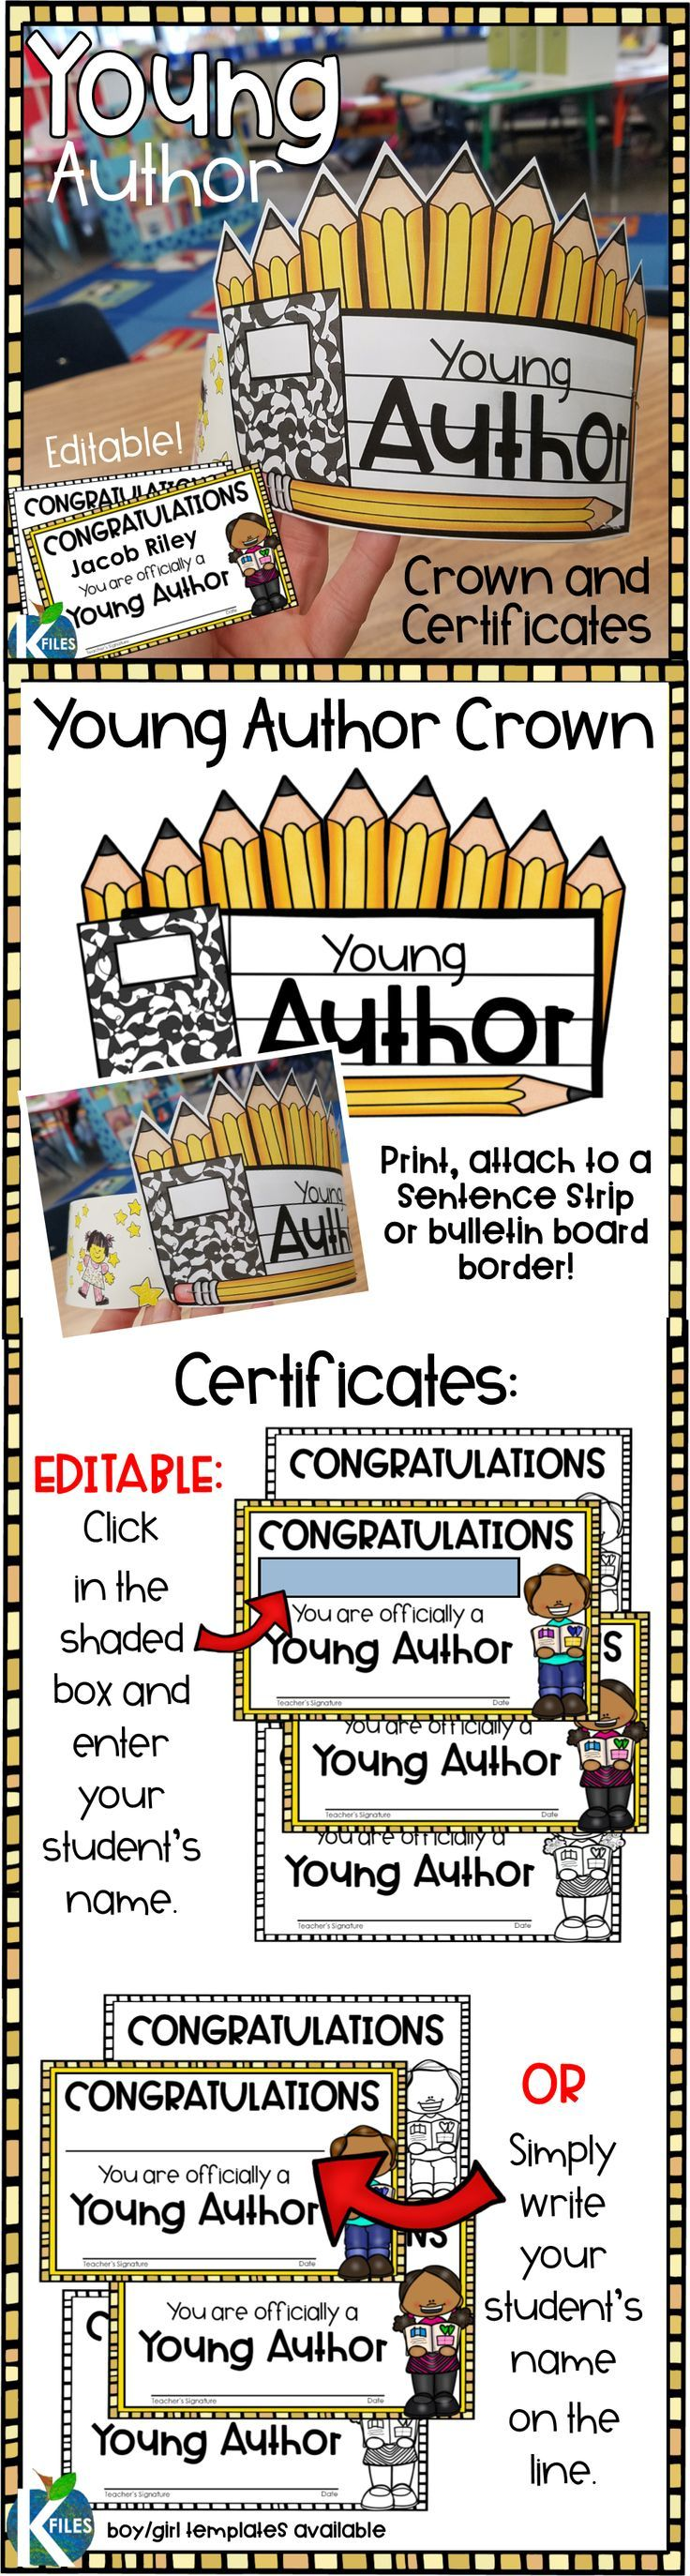 A Young Author Crown, Editable Award Certificates and Book Publishing Paper to help motivate and reward your students during Writer's Workshop!